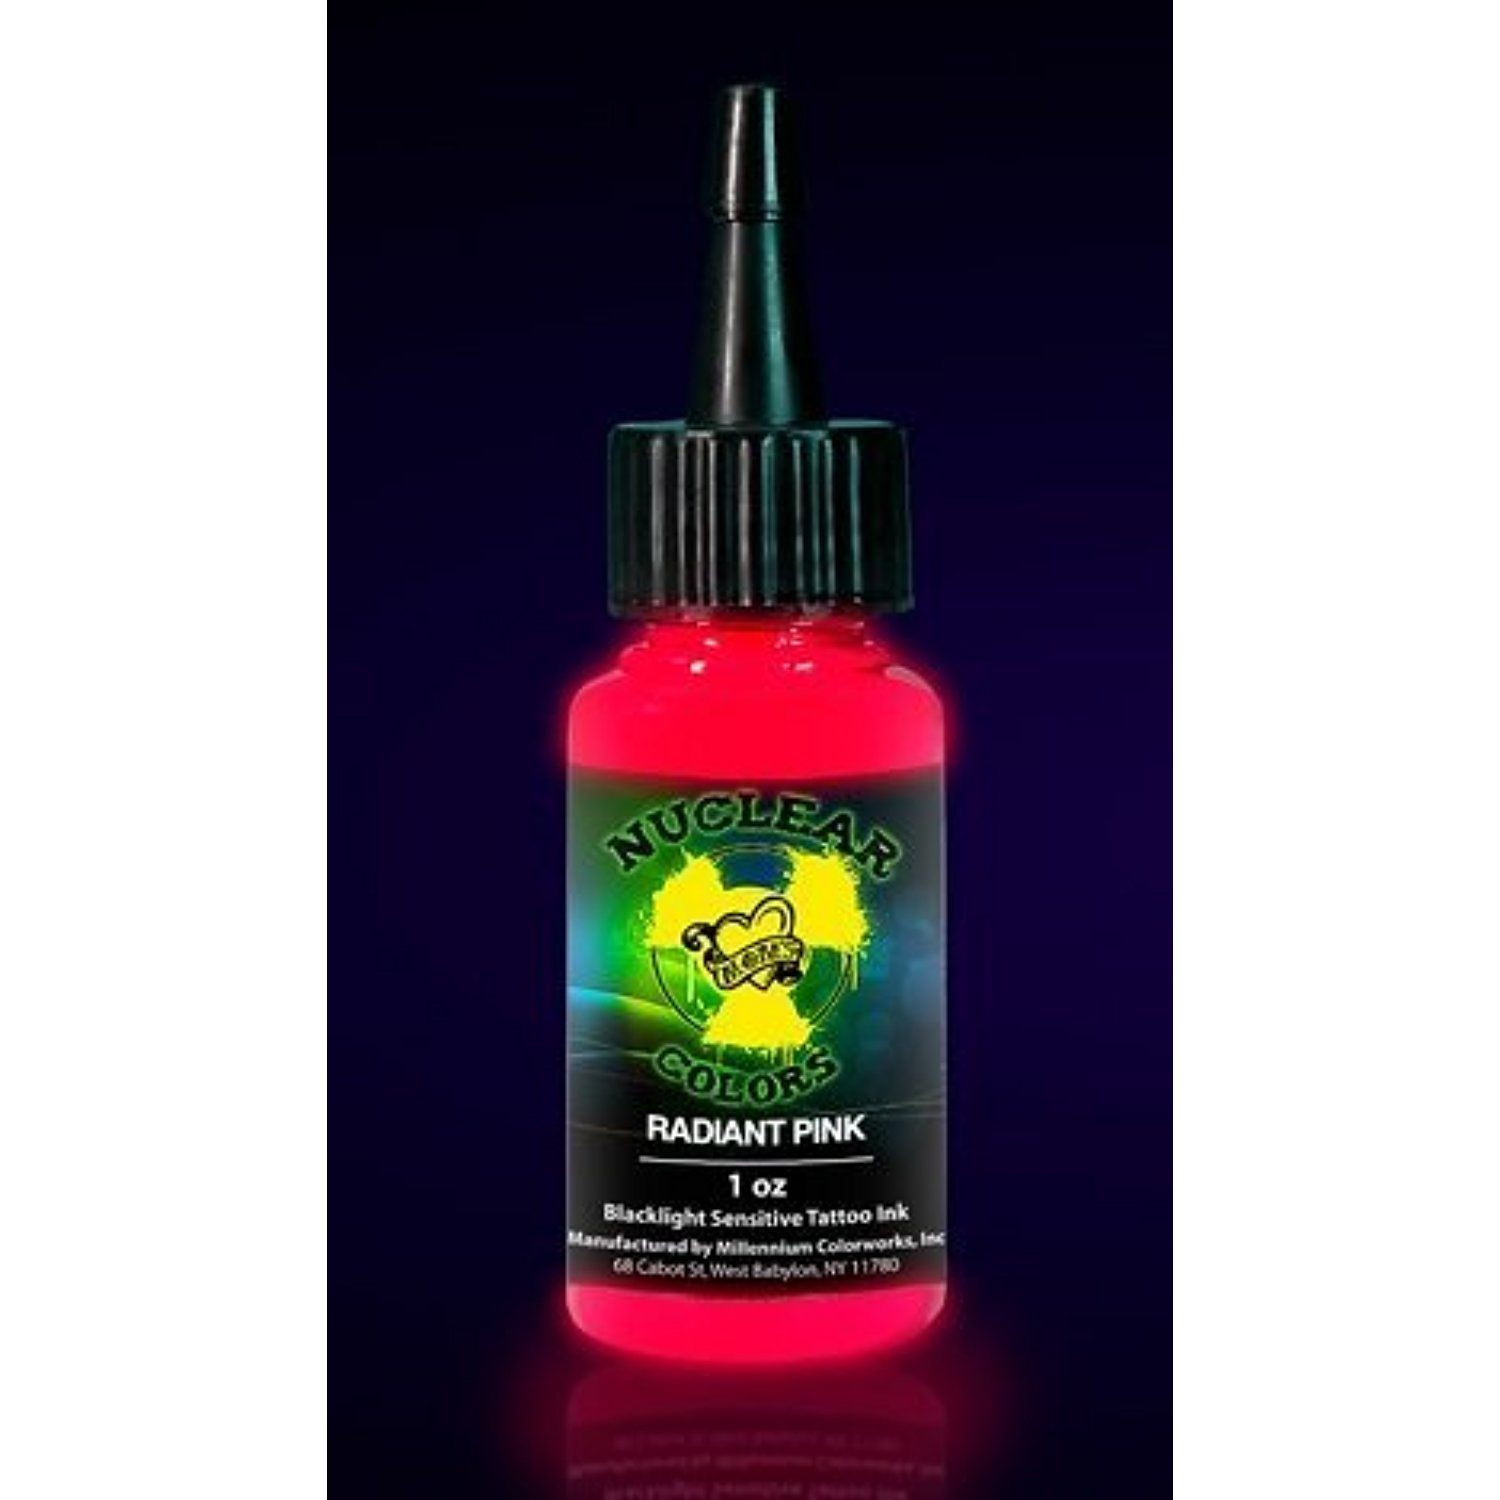 Moms Nuclear Colors Radiant Pink Neon Black Light Tattoo Ink 1 2oz Supply See This Great Product T Black Light Tattoo Ink Tattoo Tattoo Supplies